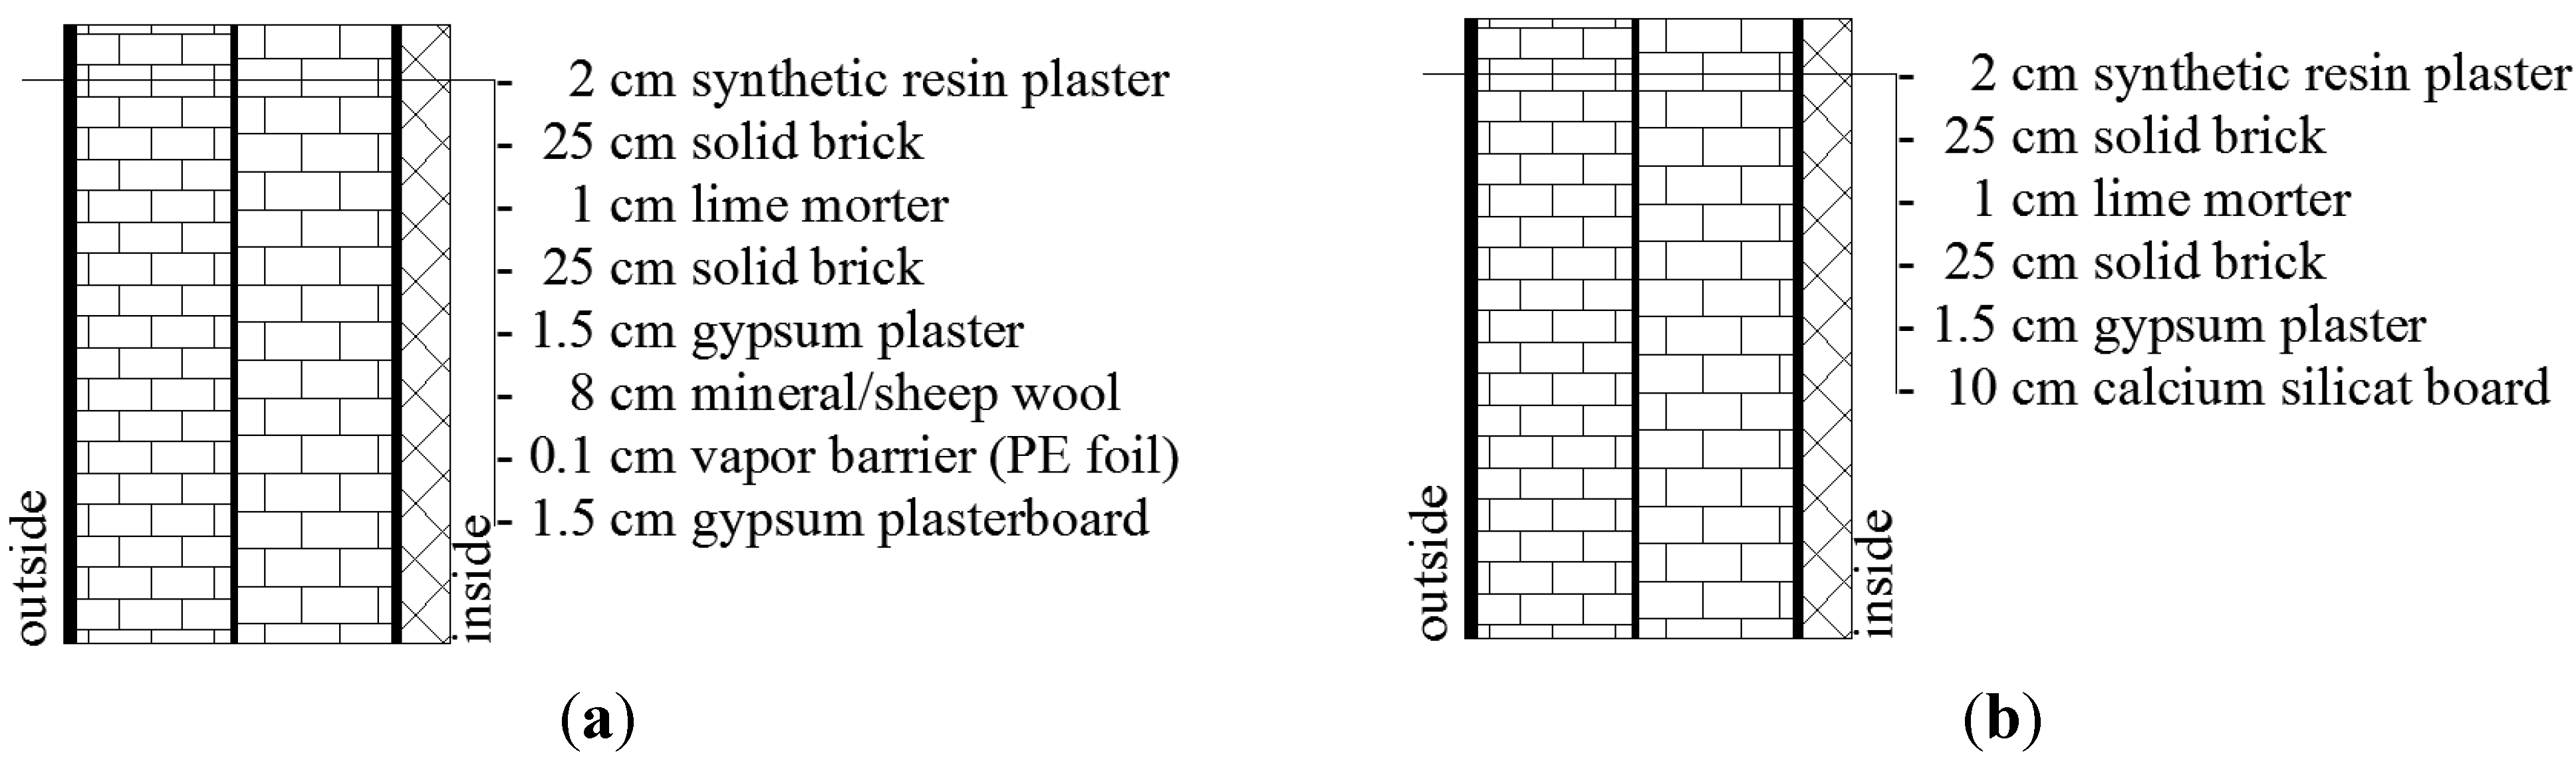 Energies free full text sheep wool as a construction for Sheeps wool insulation cost comparison